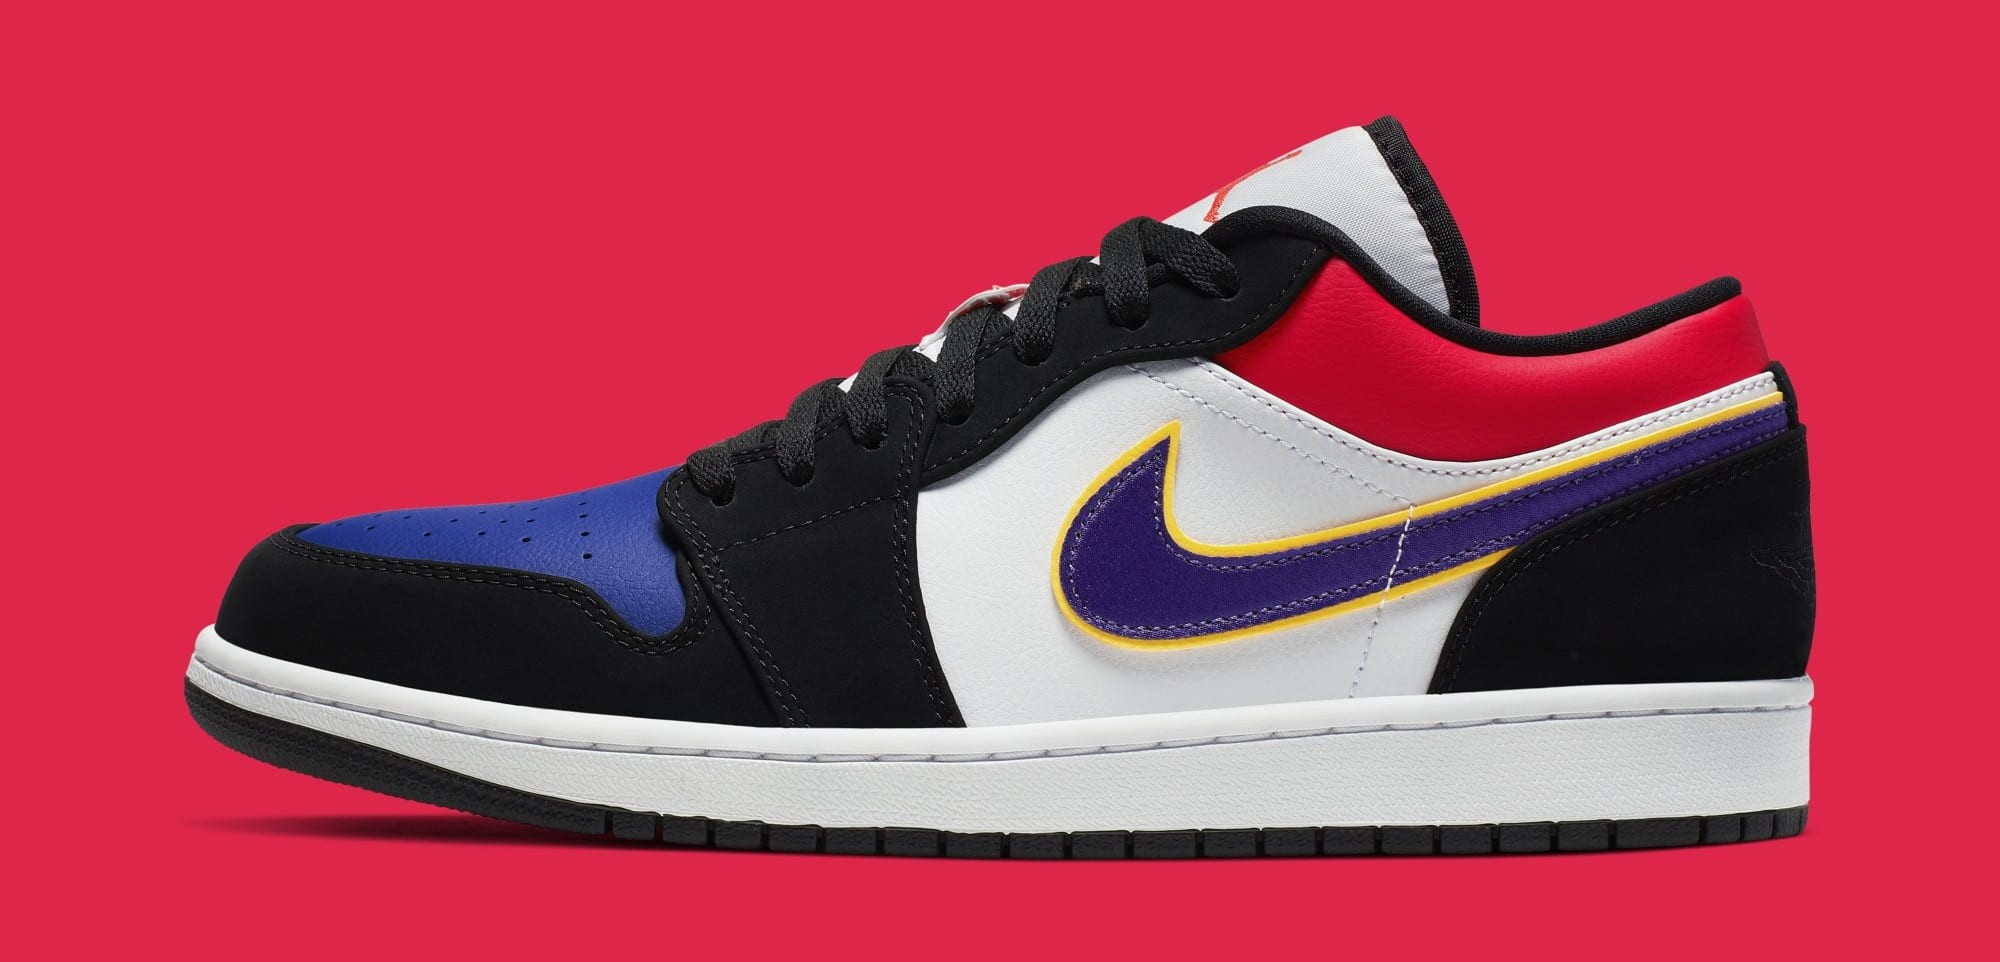 Air Jordan 1 Low (Negras/Púrpura-Bright Crimson-Azul) CJ9216-051